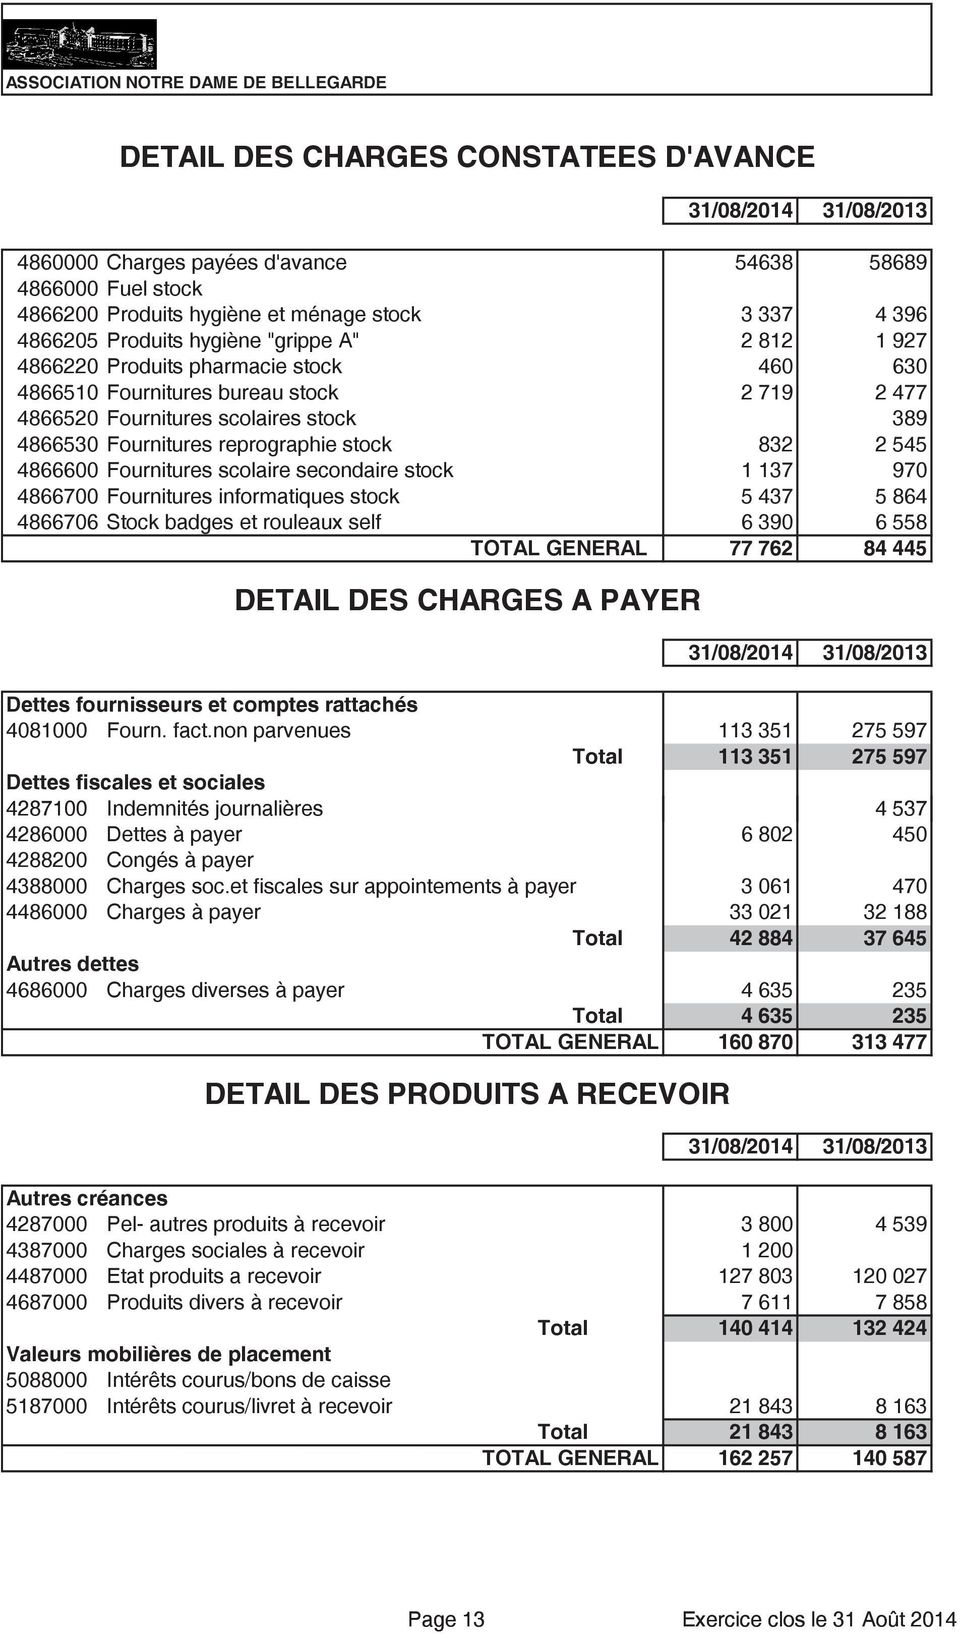 scolaire secondaire stock 1 137 97 48667 Fournitures informatiques stock 5 437 5 864 486676 Stock badges et rouleaux self 6 39 6 558 TOTAL GENERAL 77 762 84 445 DETAIL DES CHARGES A PAYER 31/8/214